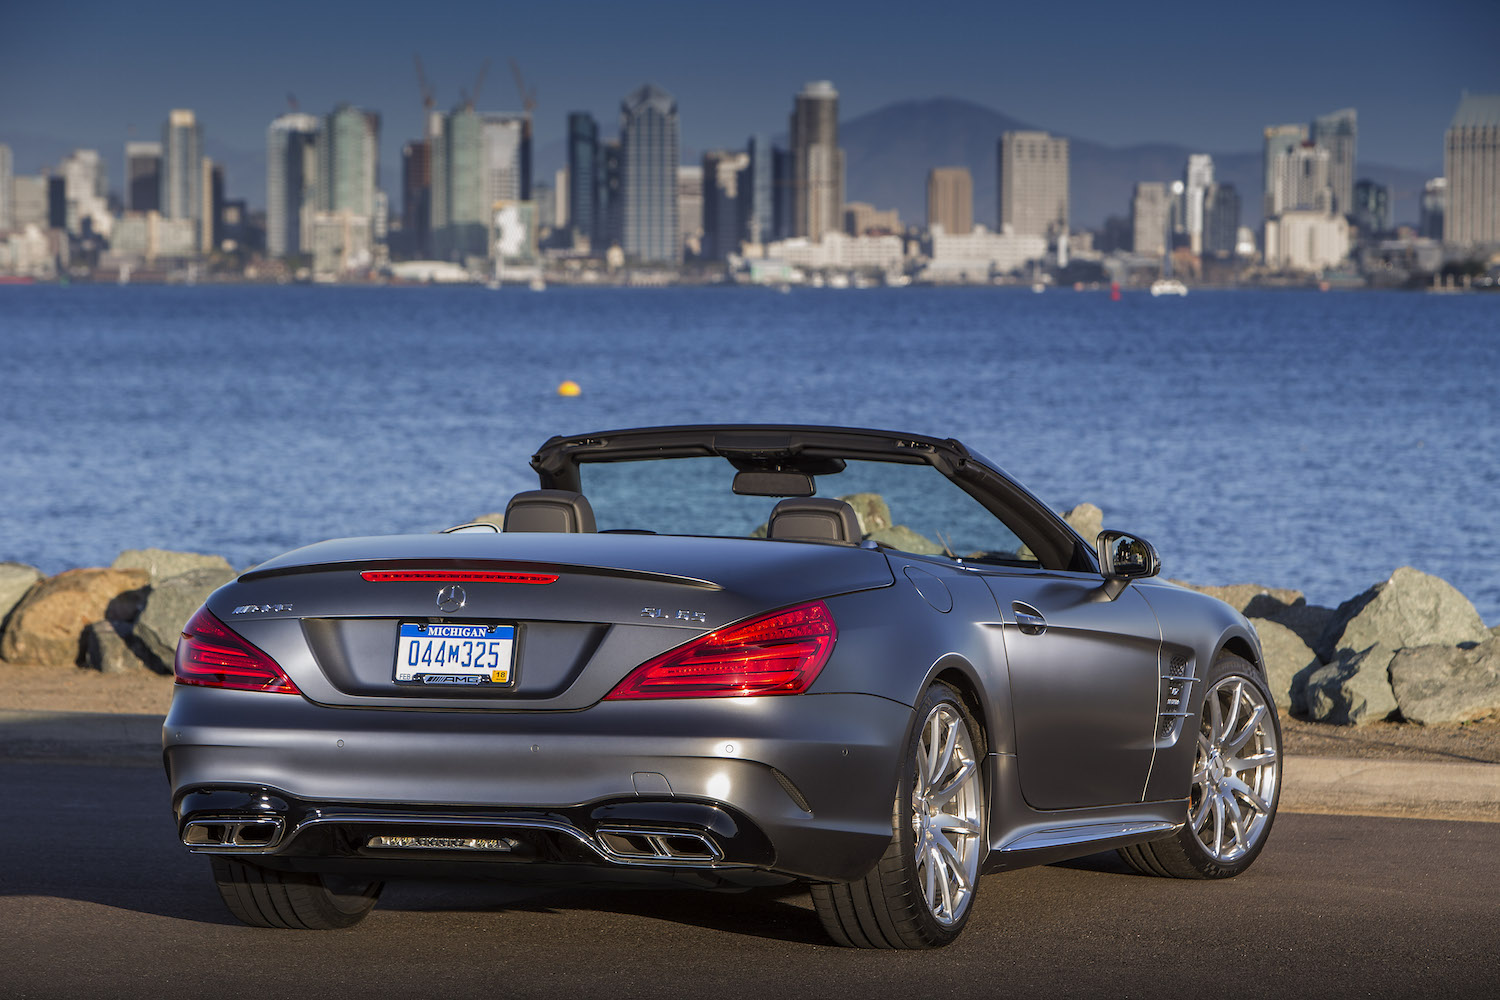 Der neue Mercedes SL, San Diego 2016, Pressefahrveranstaltung, Mercedes-AMG SL 65 Active Body Control, designo selenitgrau magno, Leder designo titangrau pearl/schwarz.The new SL San Diego 2016; Mercedes-AMG SL 65, Active Body Control, designo selenite grey magno, designo leather titanium grey pearl/black